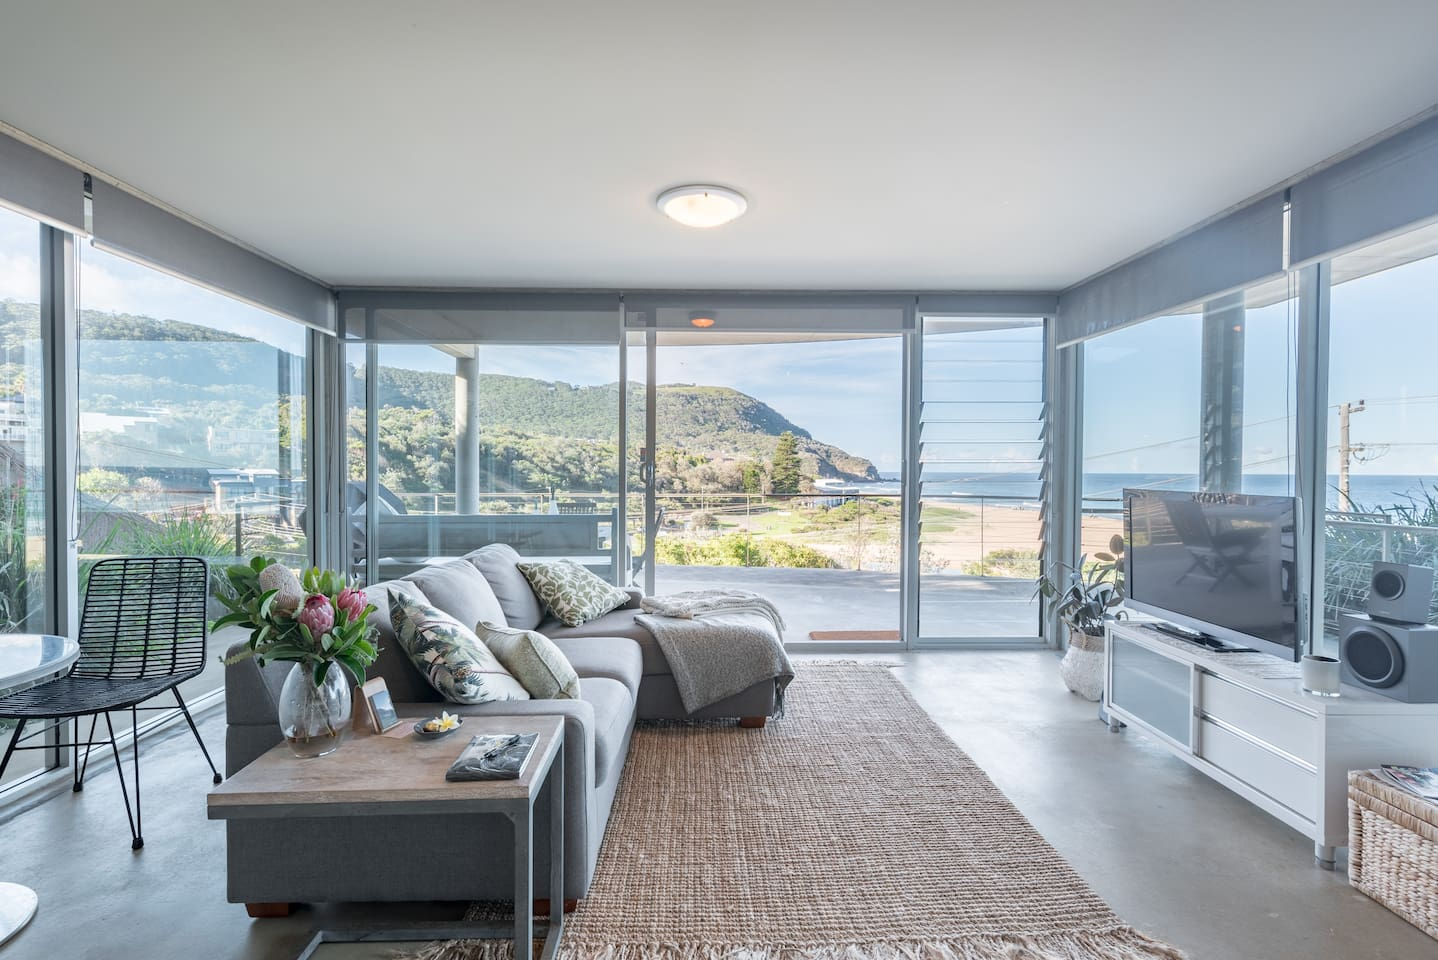 Lounge/living area with views to beach and escarpement.